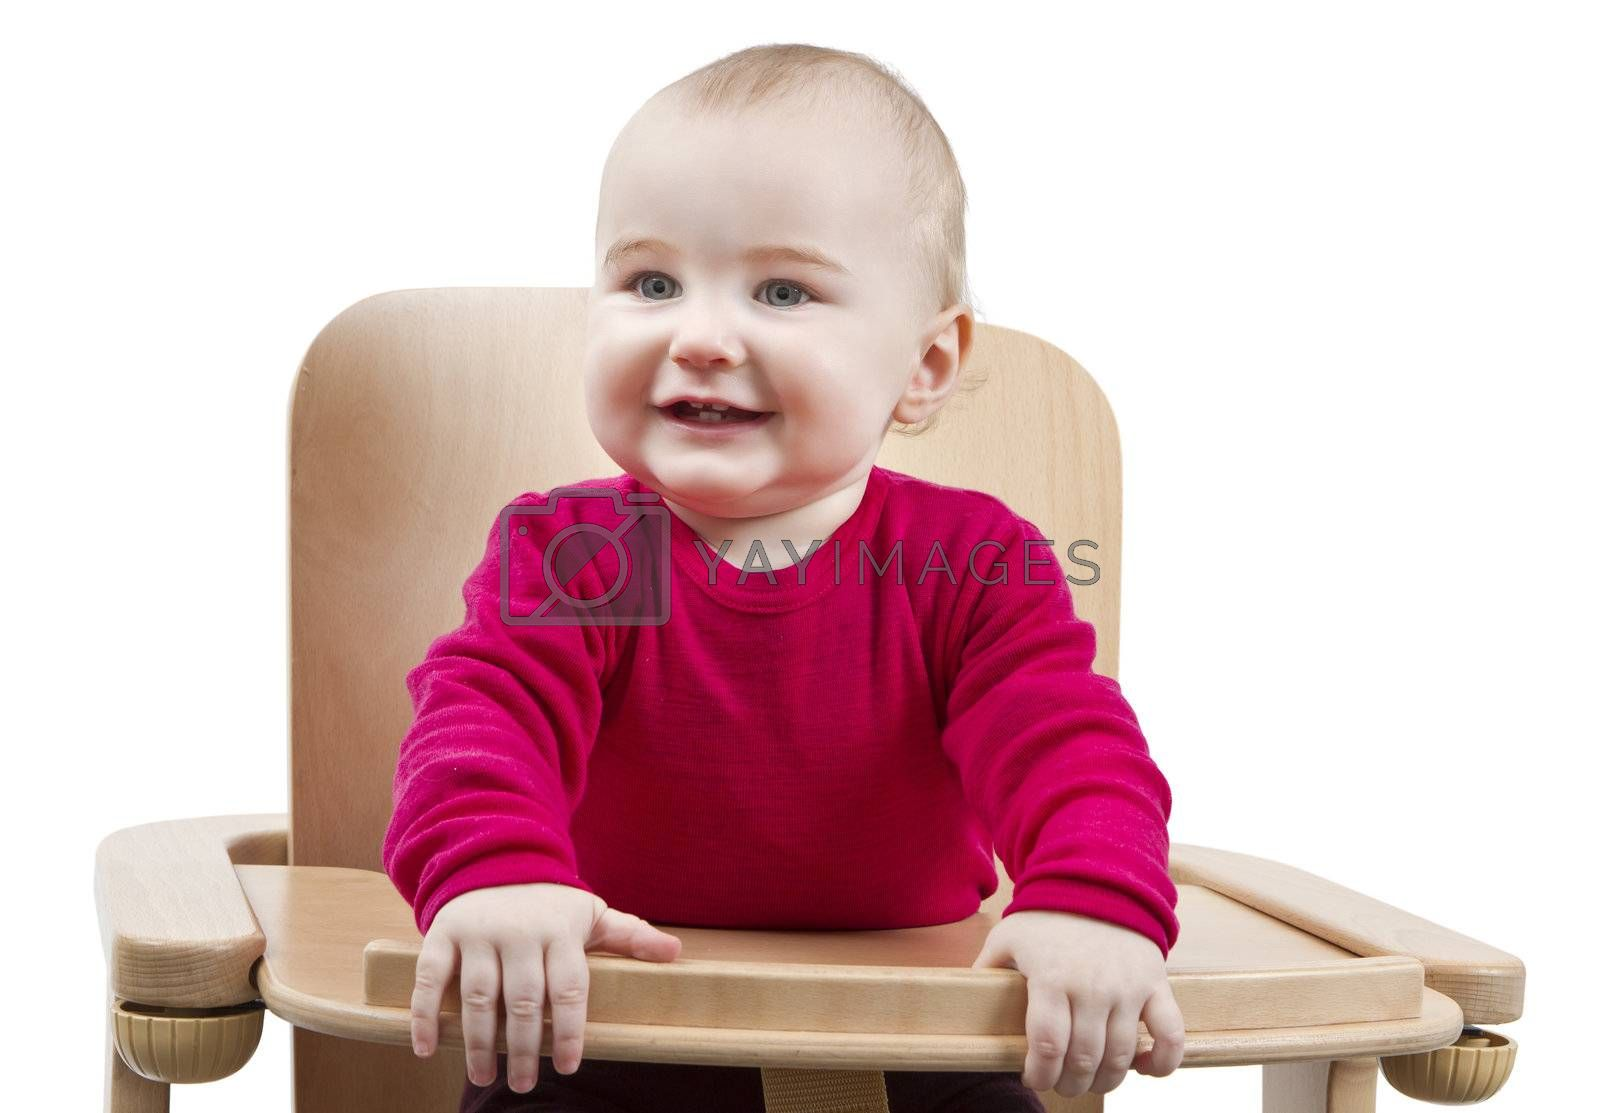 young child in red shirt sitting in wooden chair. Isolated on white background